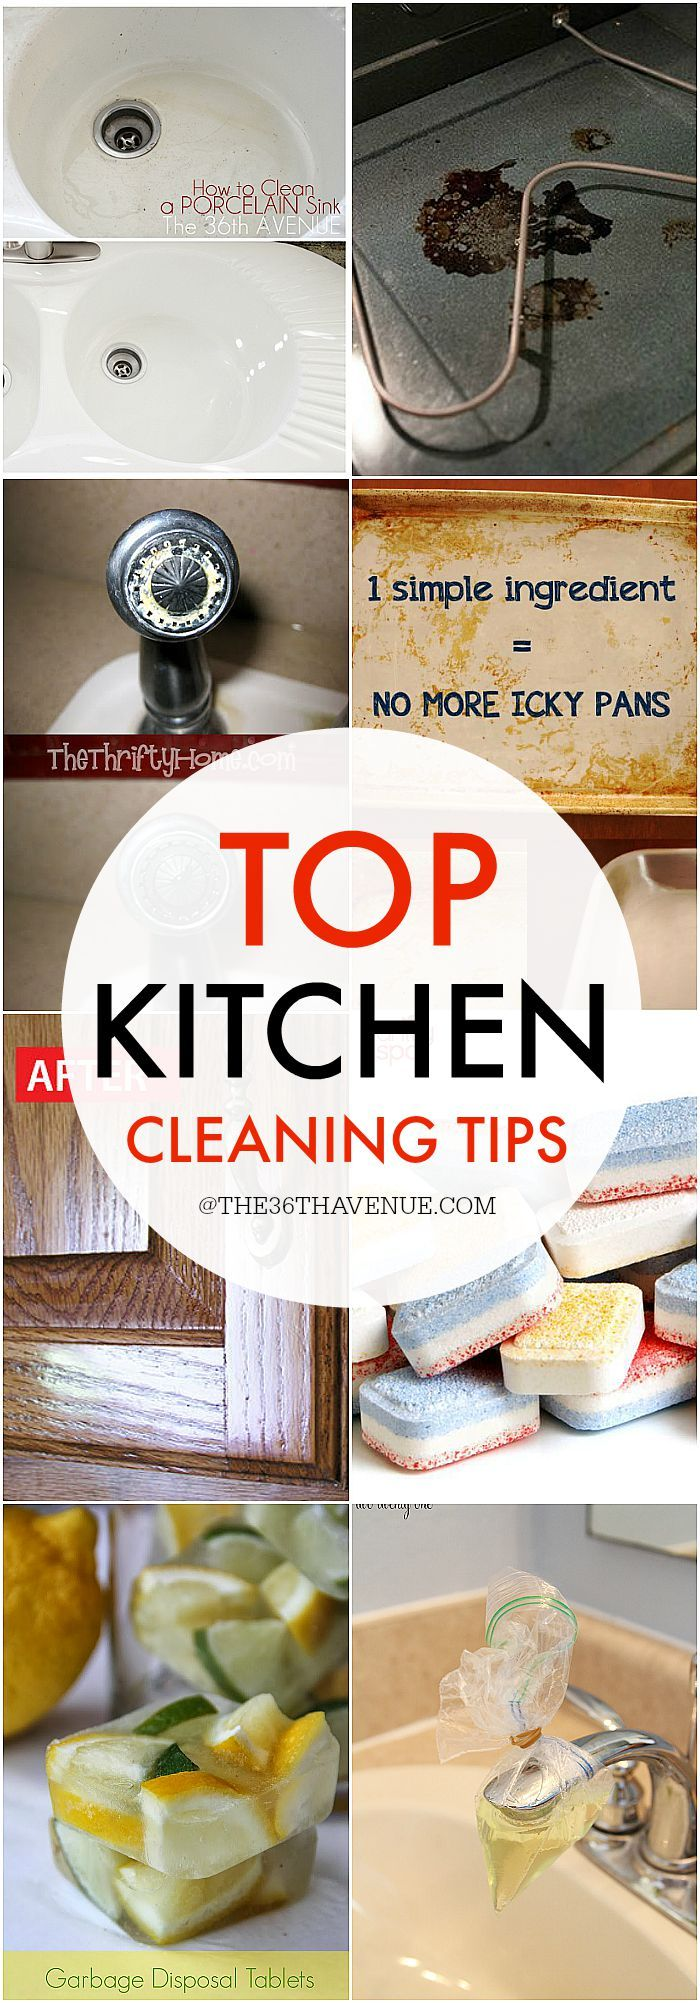 Top Kitchen Cleaning Tips Kitchen Hacks Cleaning Tips